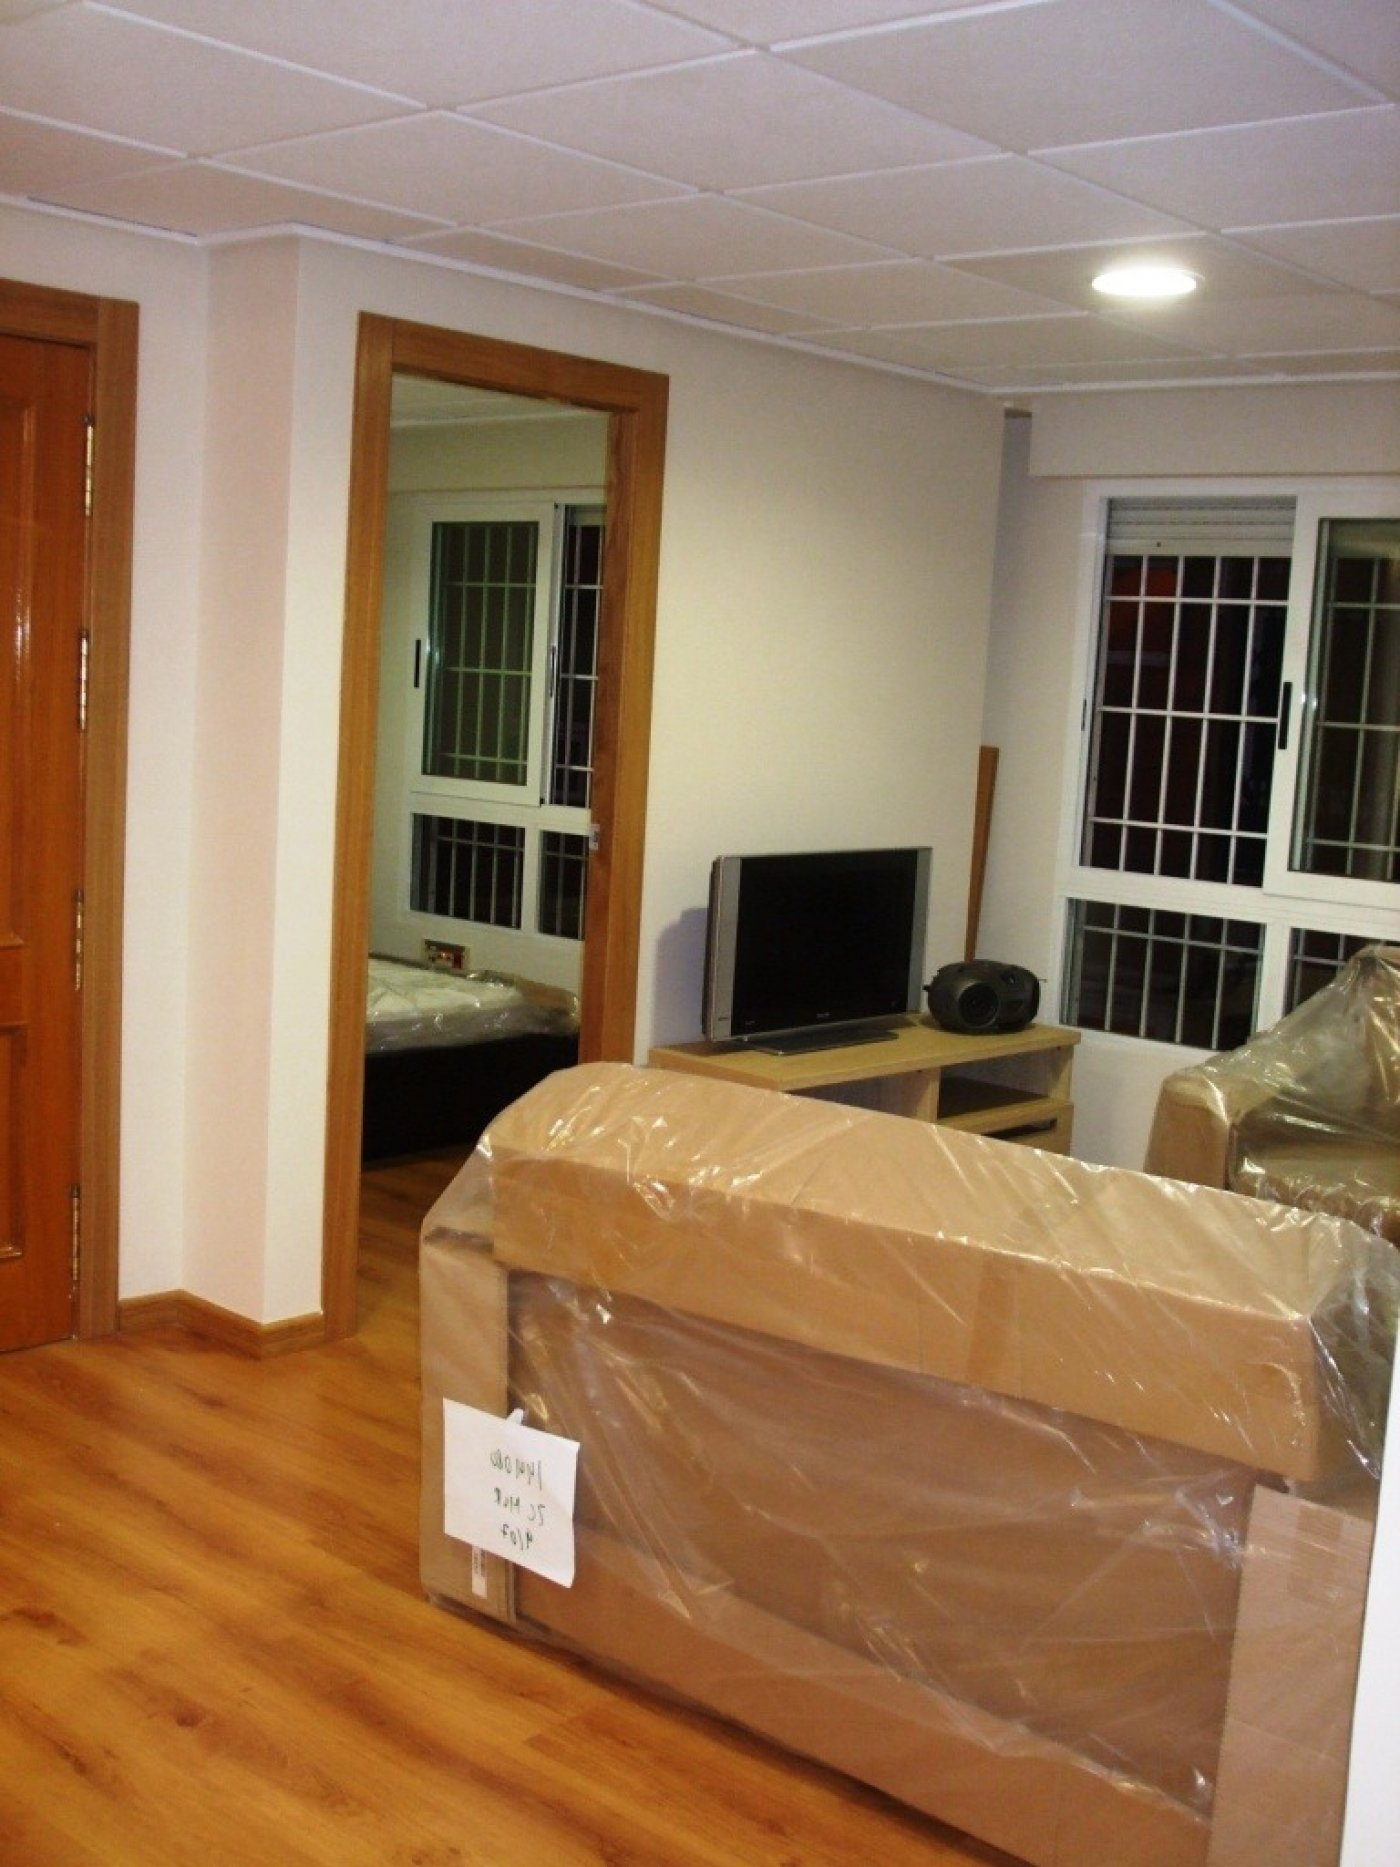 Gallery Image 2 of Flat For rent in Catedral, Murcia